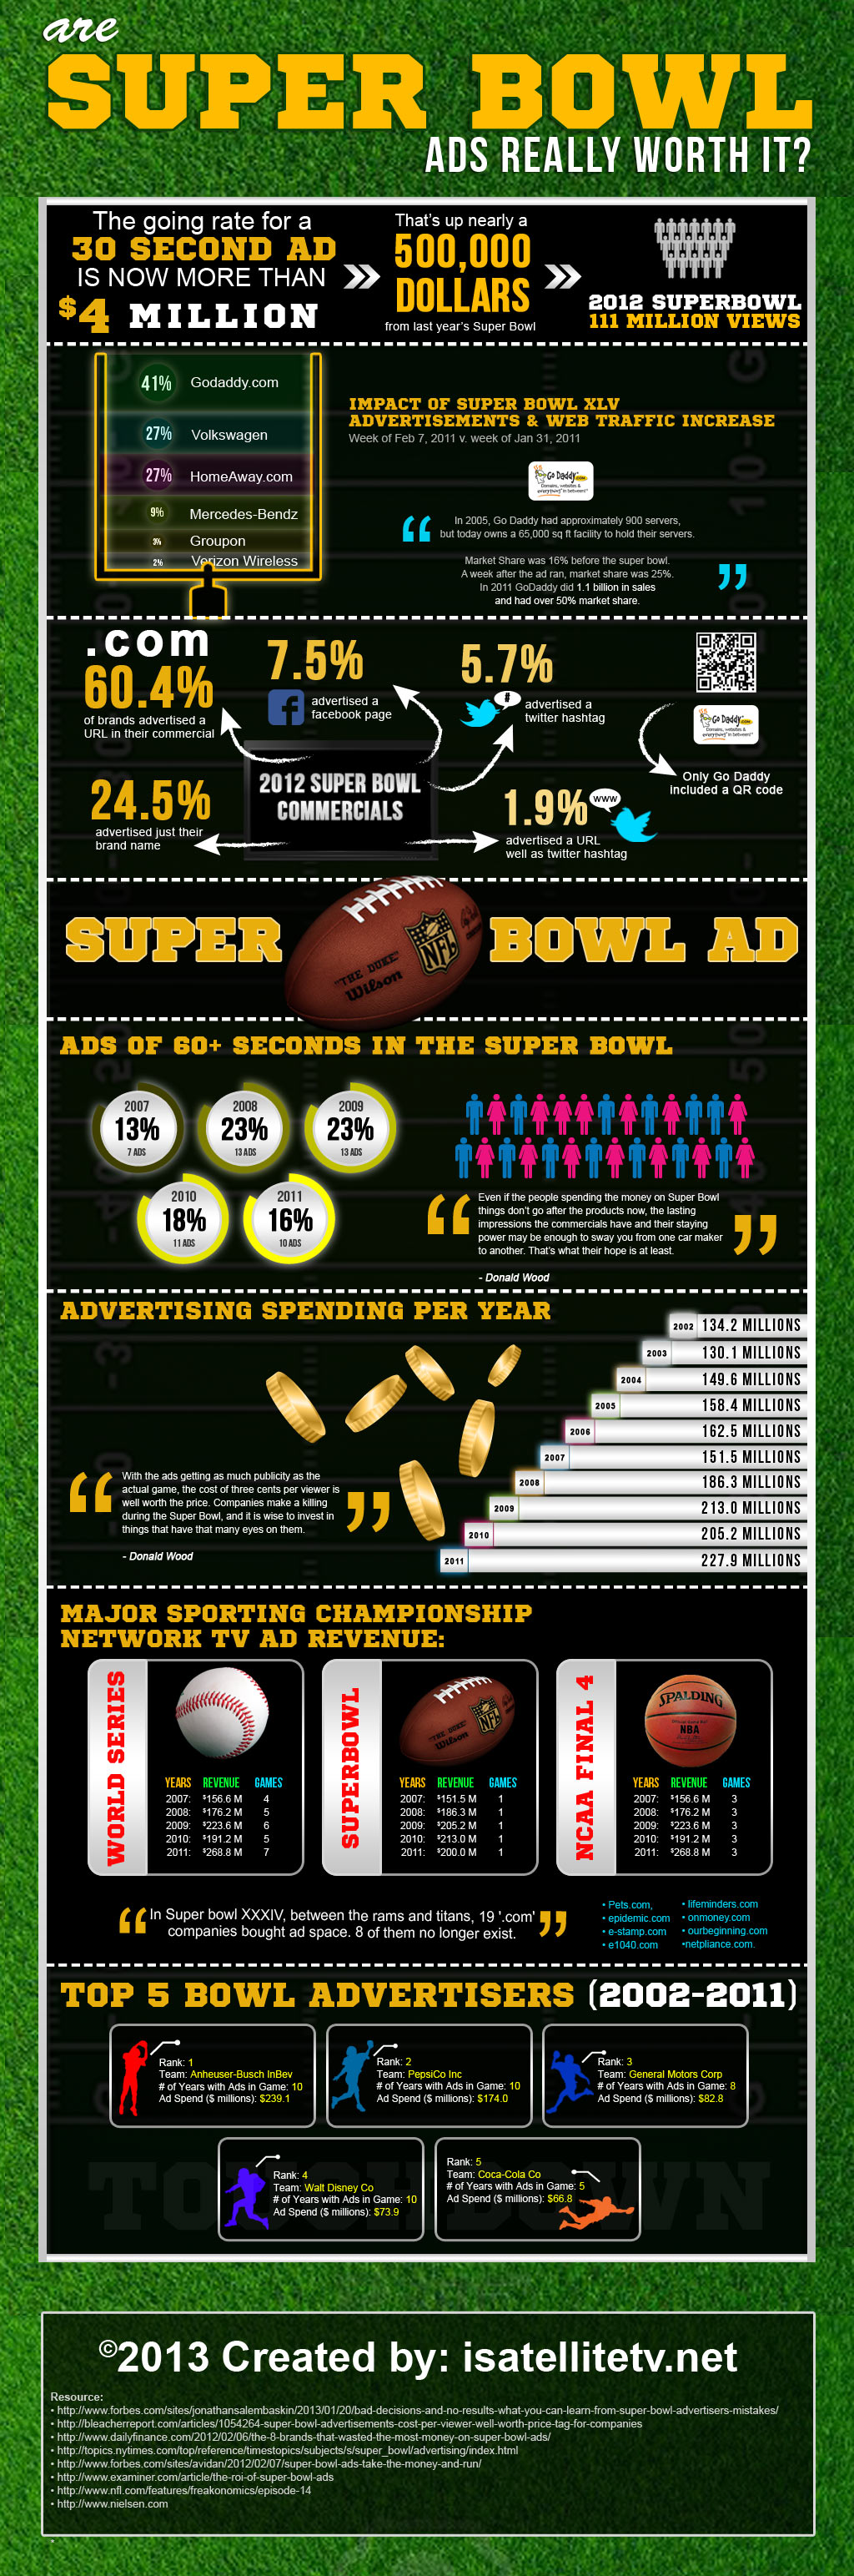 Are Superbowl Ads Really Worth It?